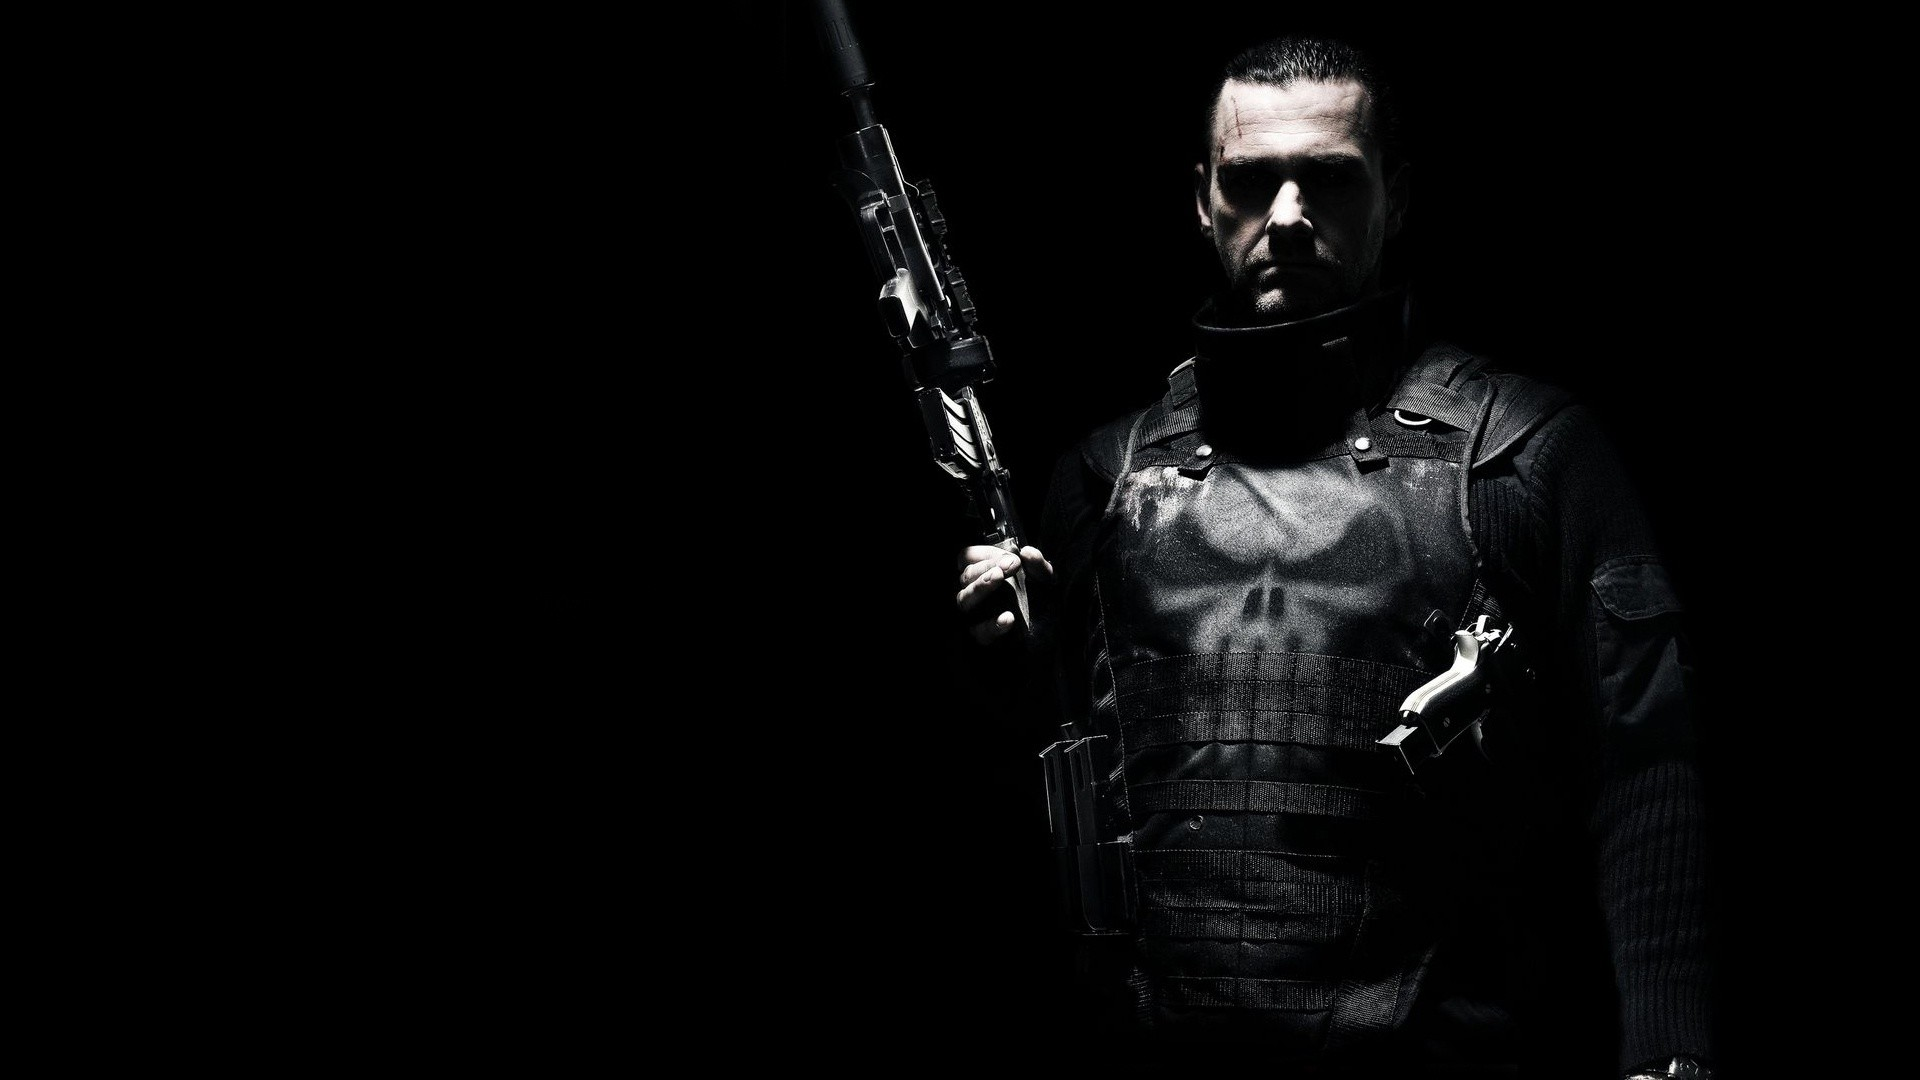 1920x1080 The Punisher Computer Wallpapers, Desktop Backgrounds Punisher Backgrounds  Wallpapers)